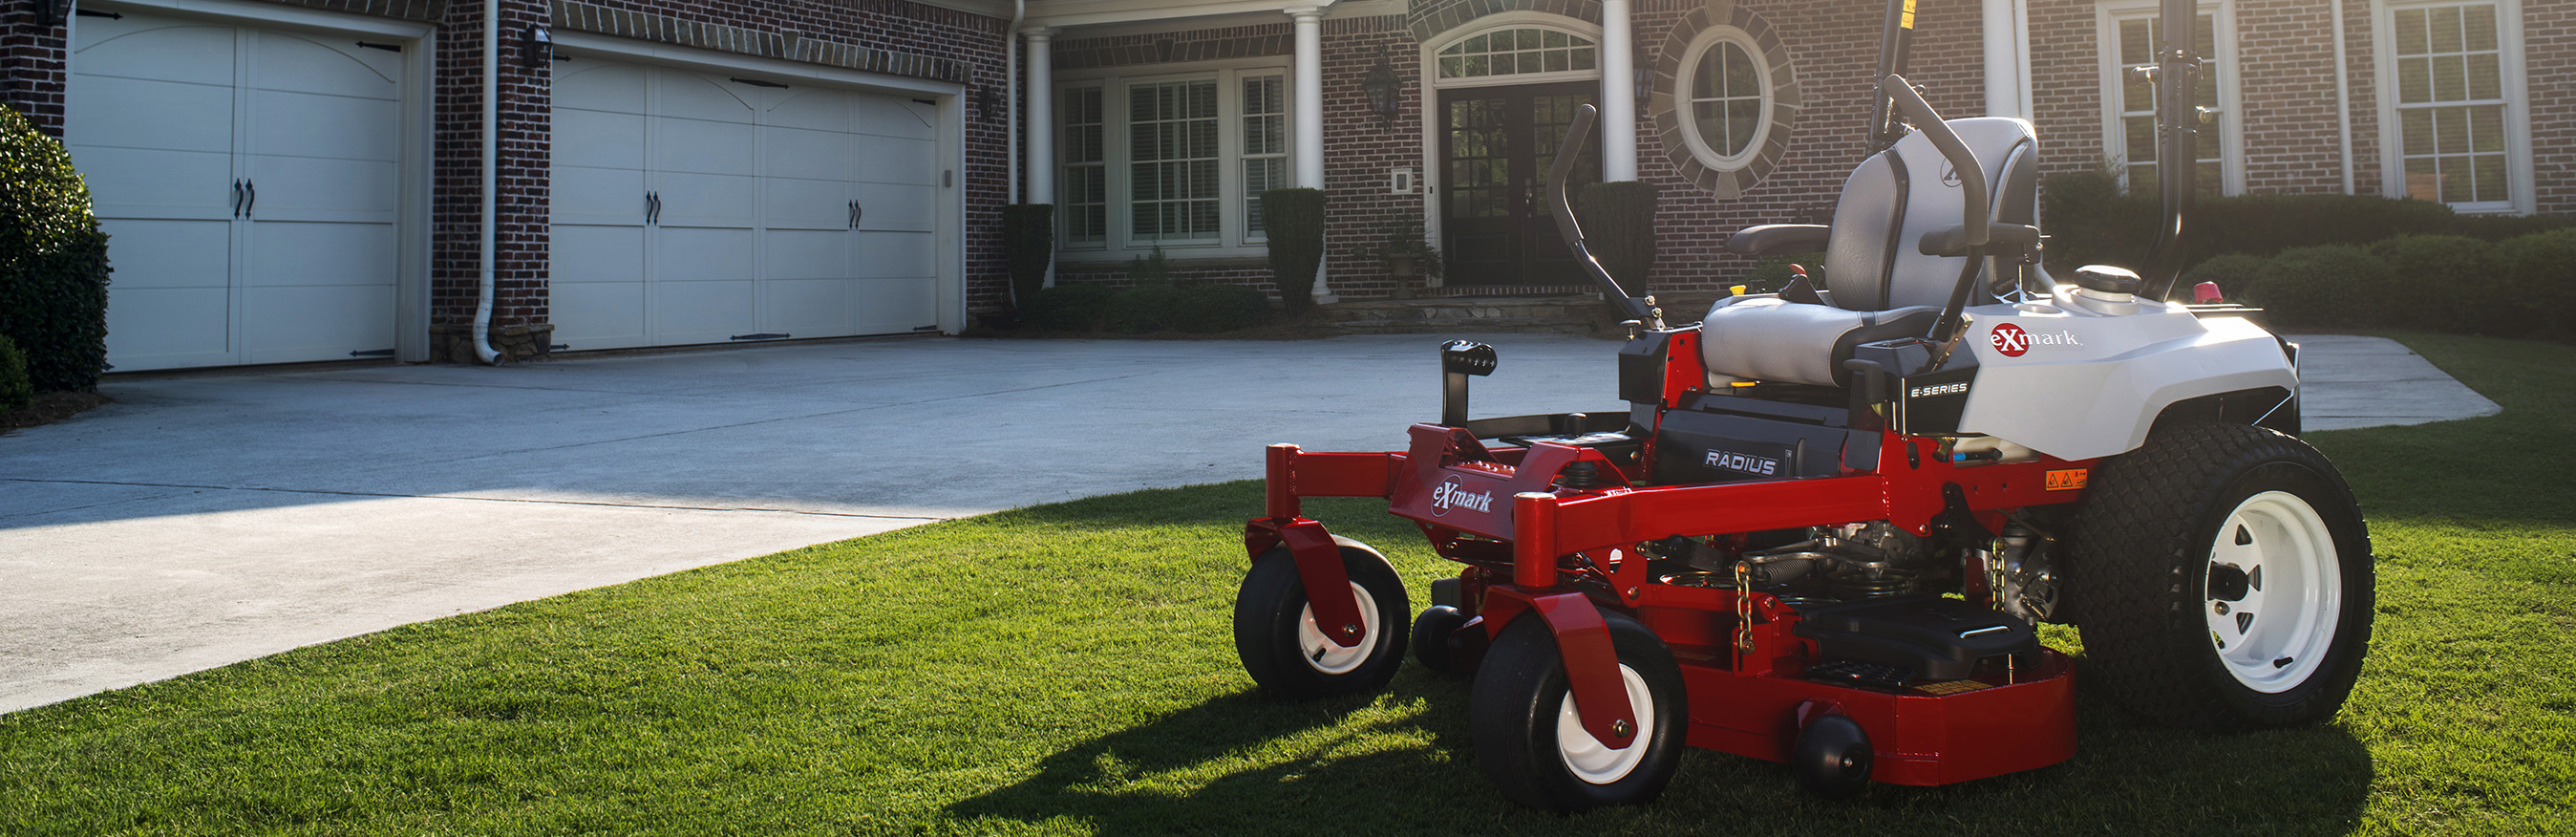 Red Exmark lawn mower parked on grass in yard of large brick house